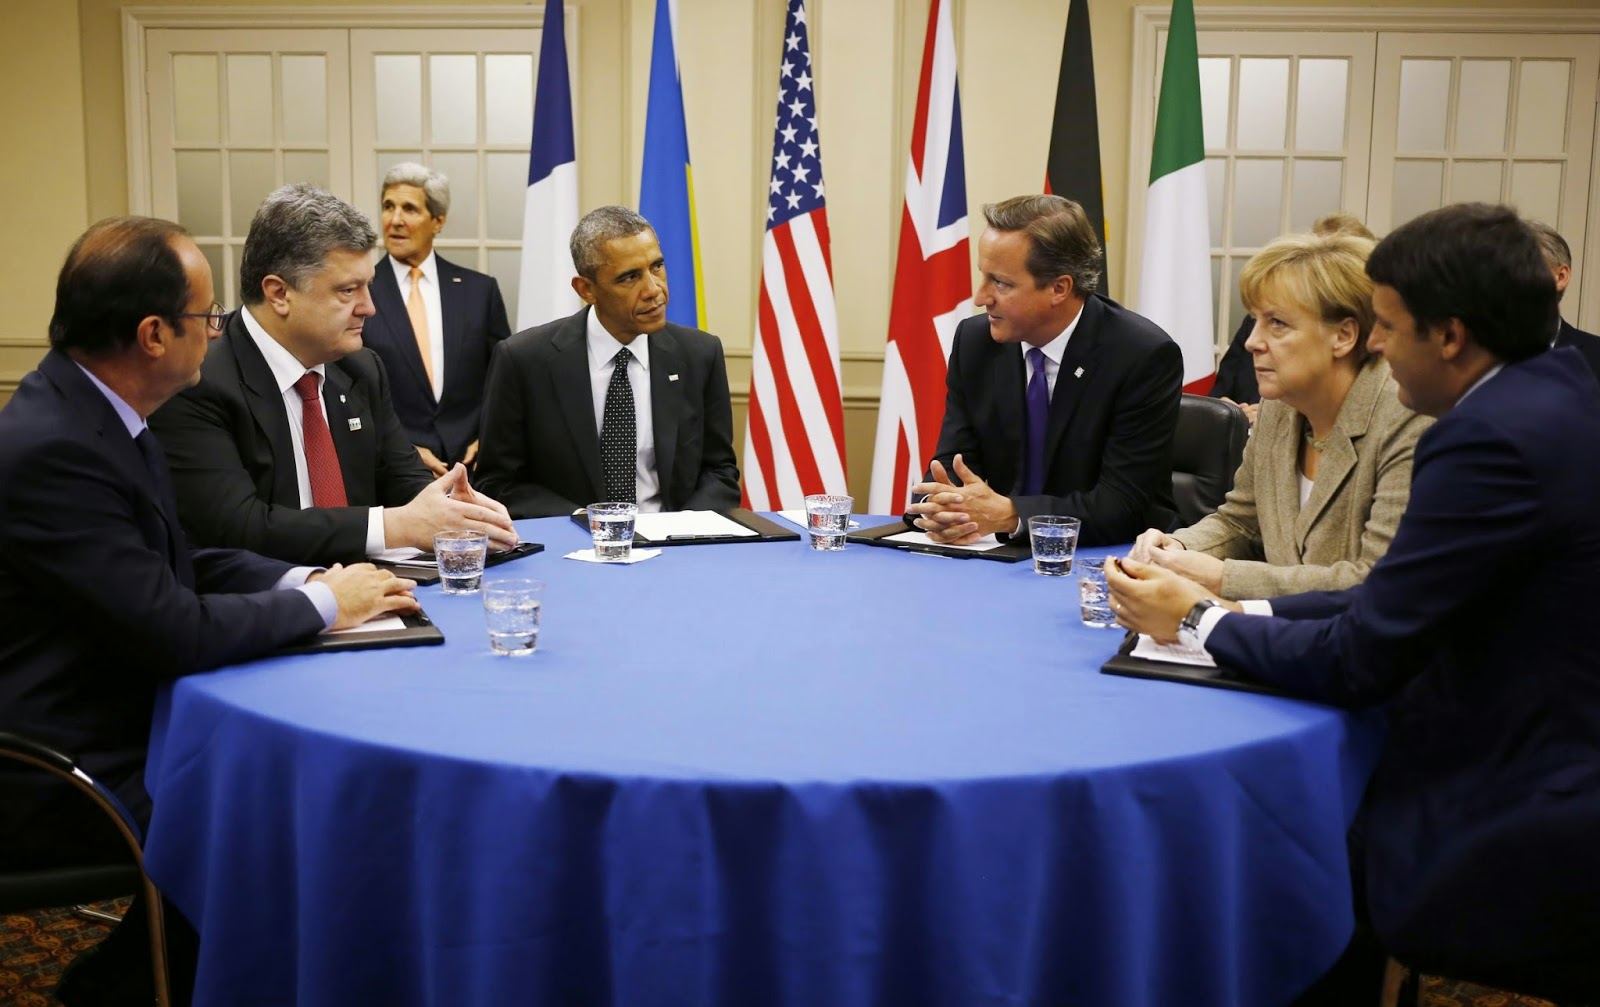 NATO summit provided hope to Ukraine for receiving arms so much needed in Ukrainian army, confirmed that Ukraine is an Alliance partner